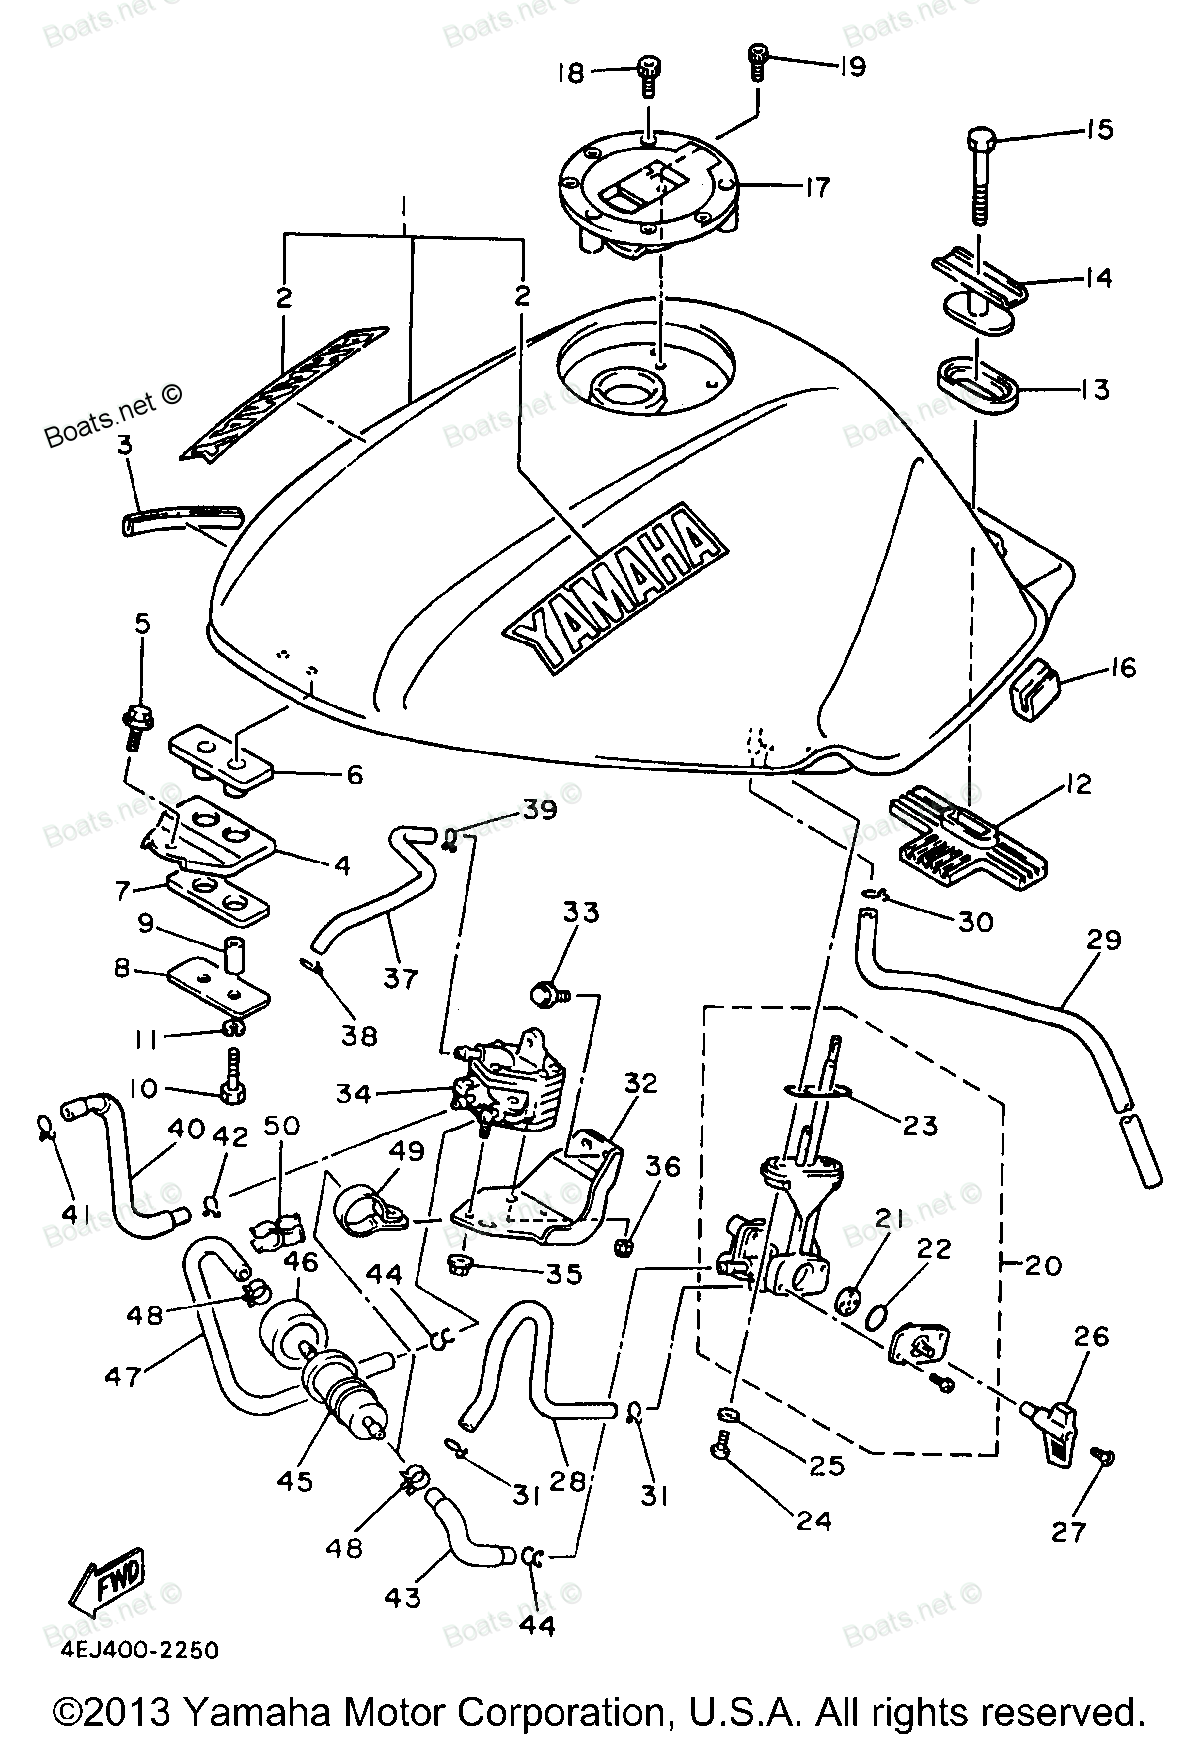 Seca 2 Yamaha Fuel System Diagram Of 1997 Ii Pump Xj600sjc Motorcycle Tank